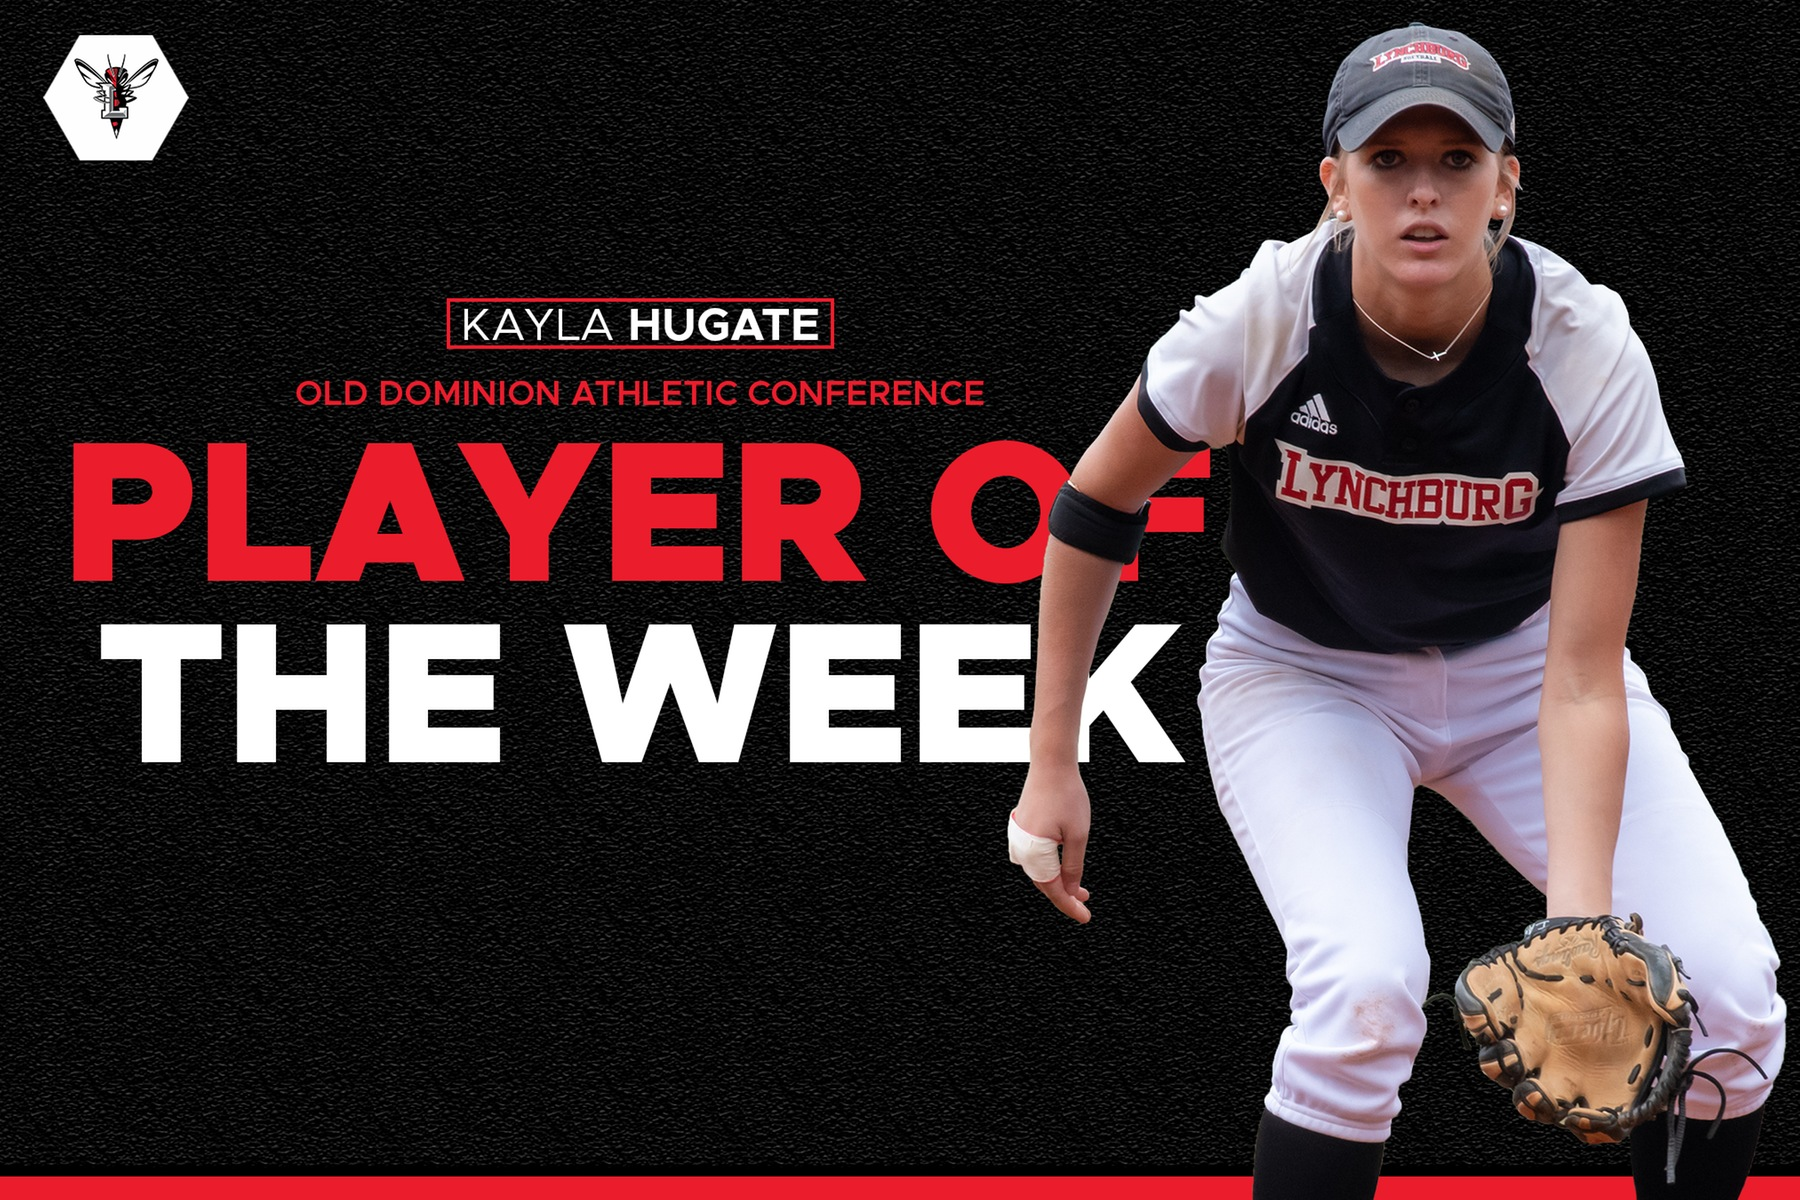 Kayla Hugate in fielding position over top of black and red ODAC player of the week graphic